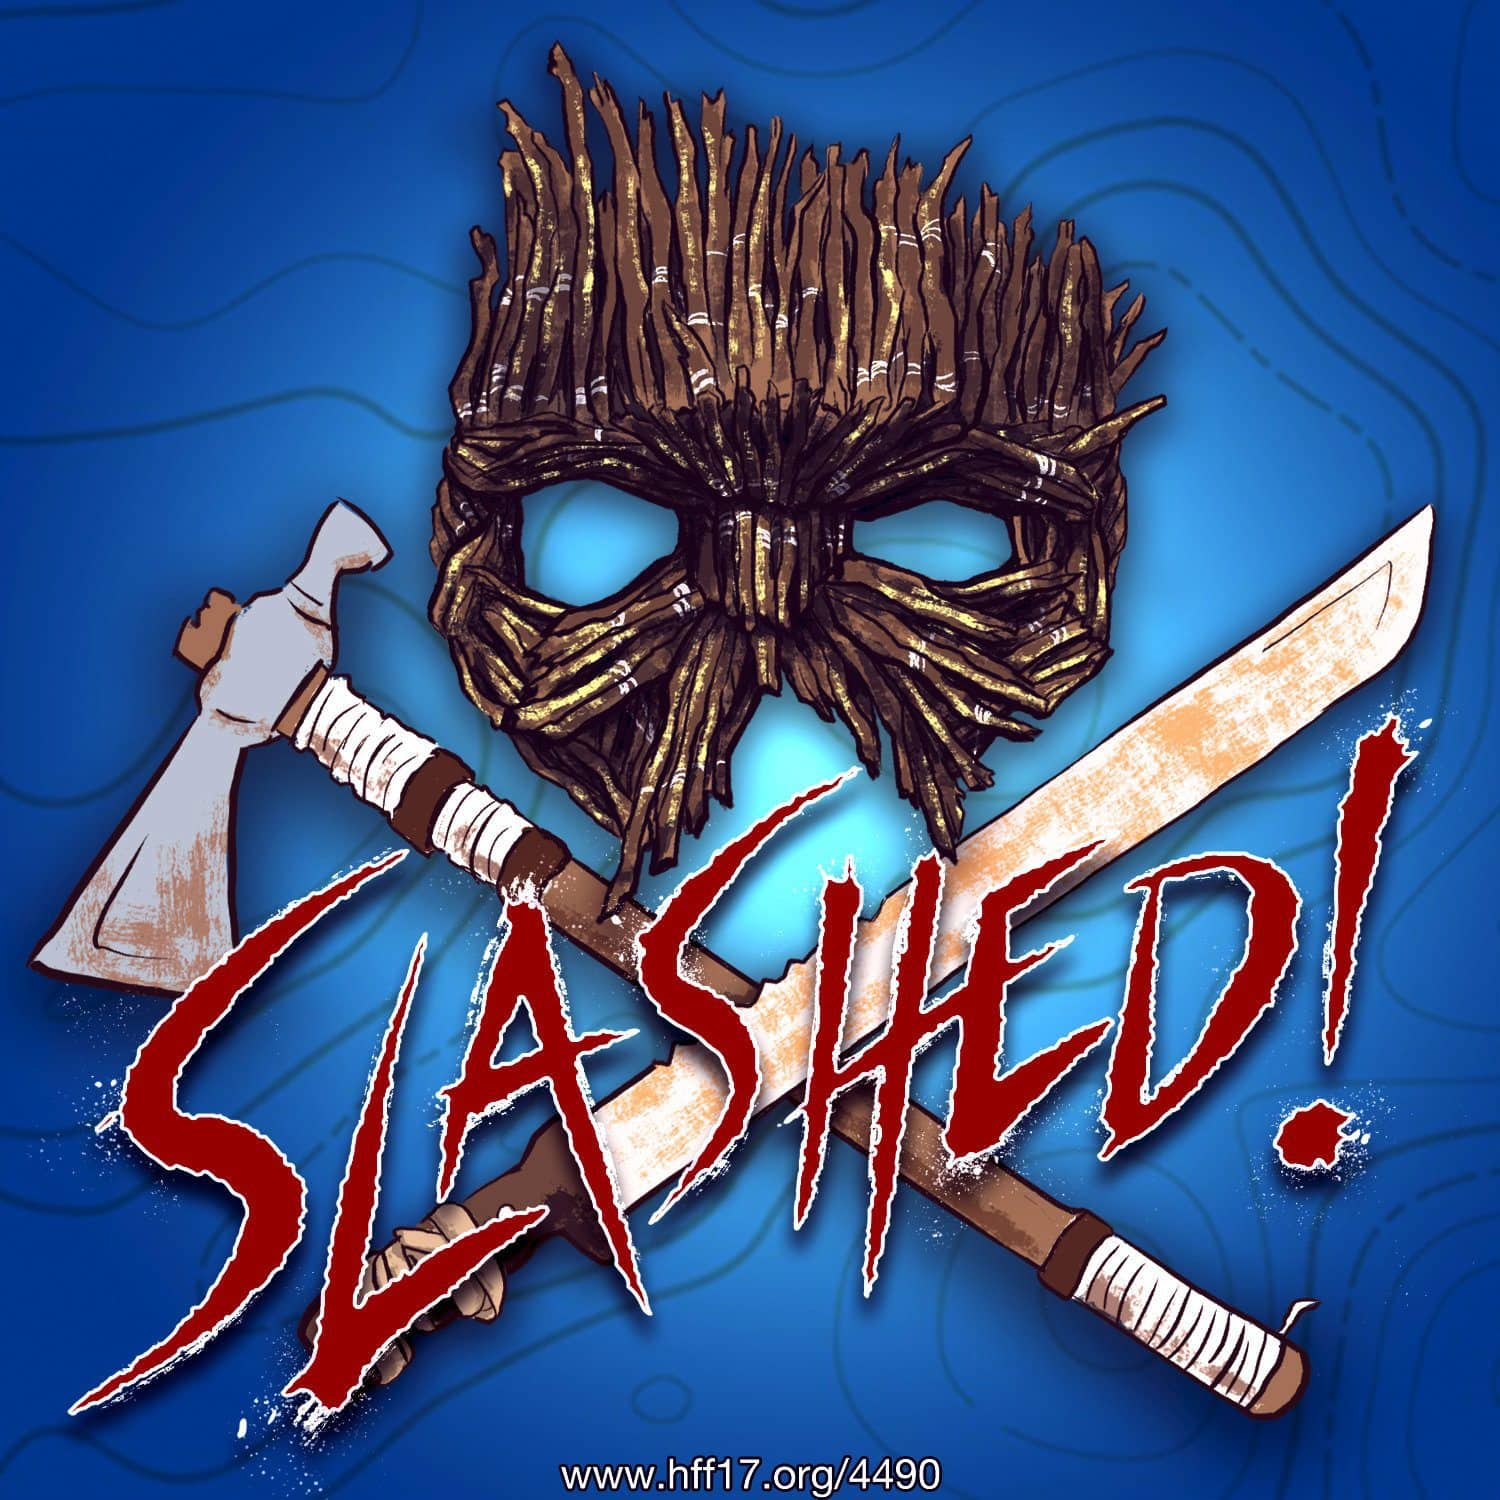 Slashed! Musical Los Angeles